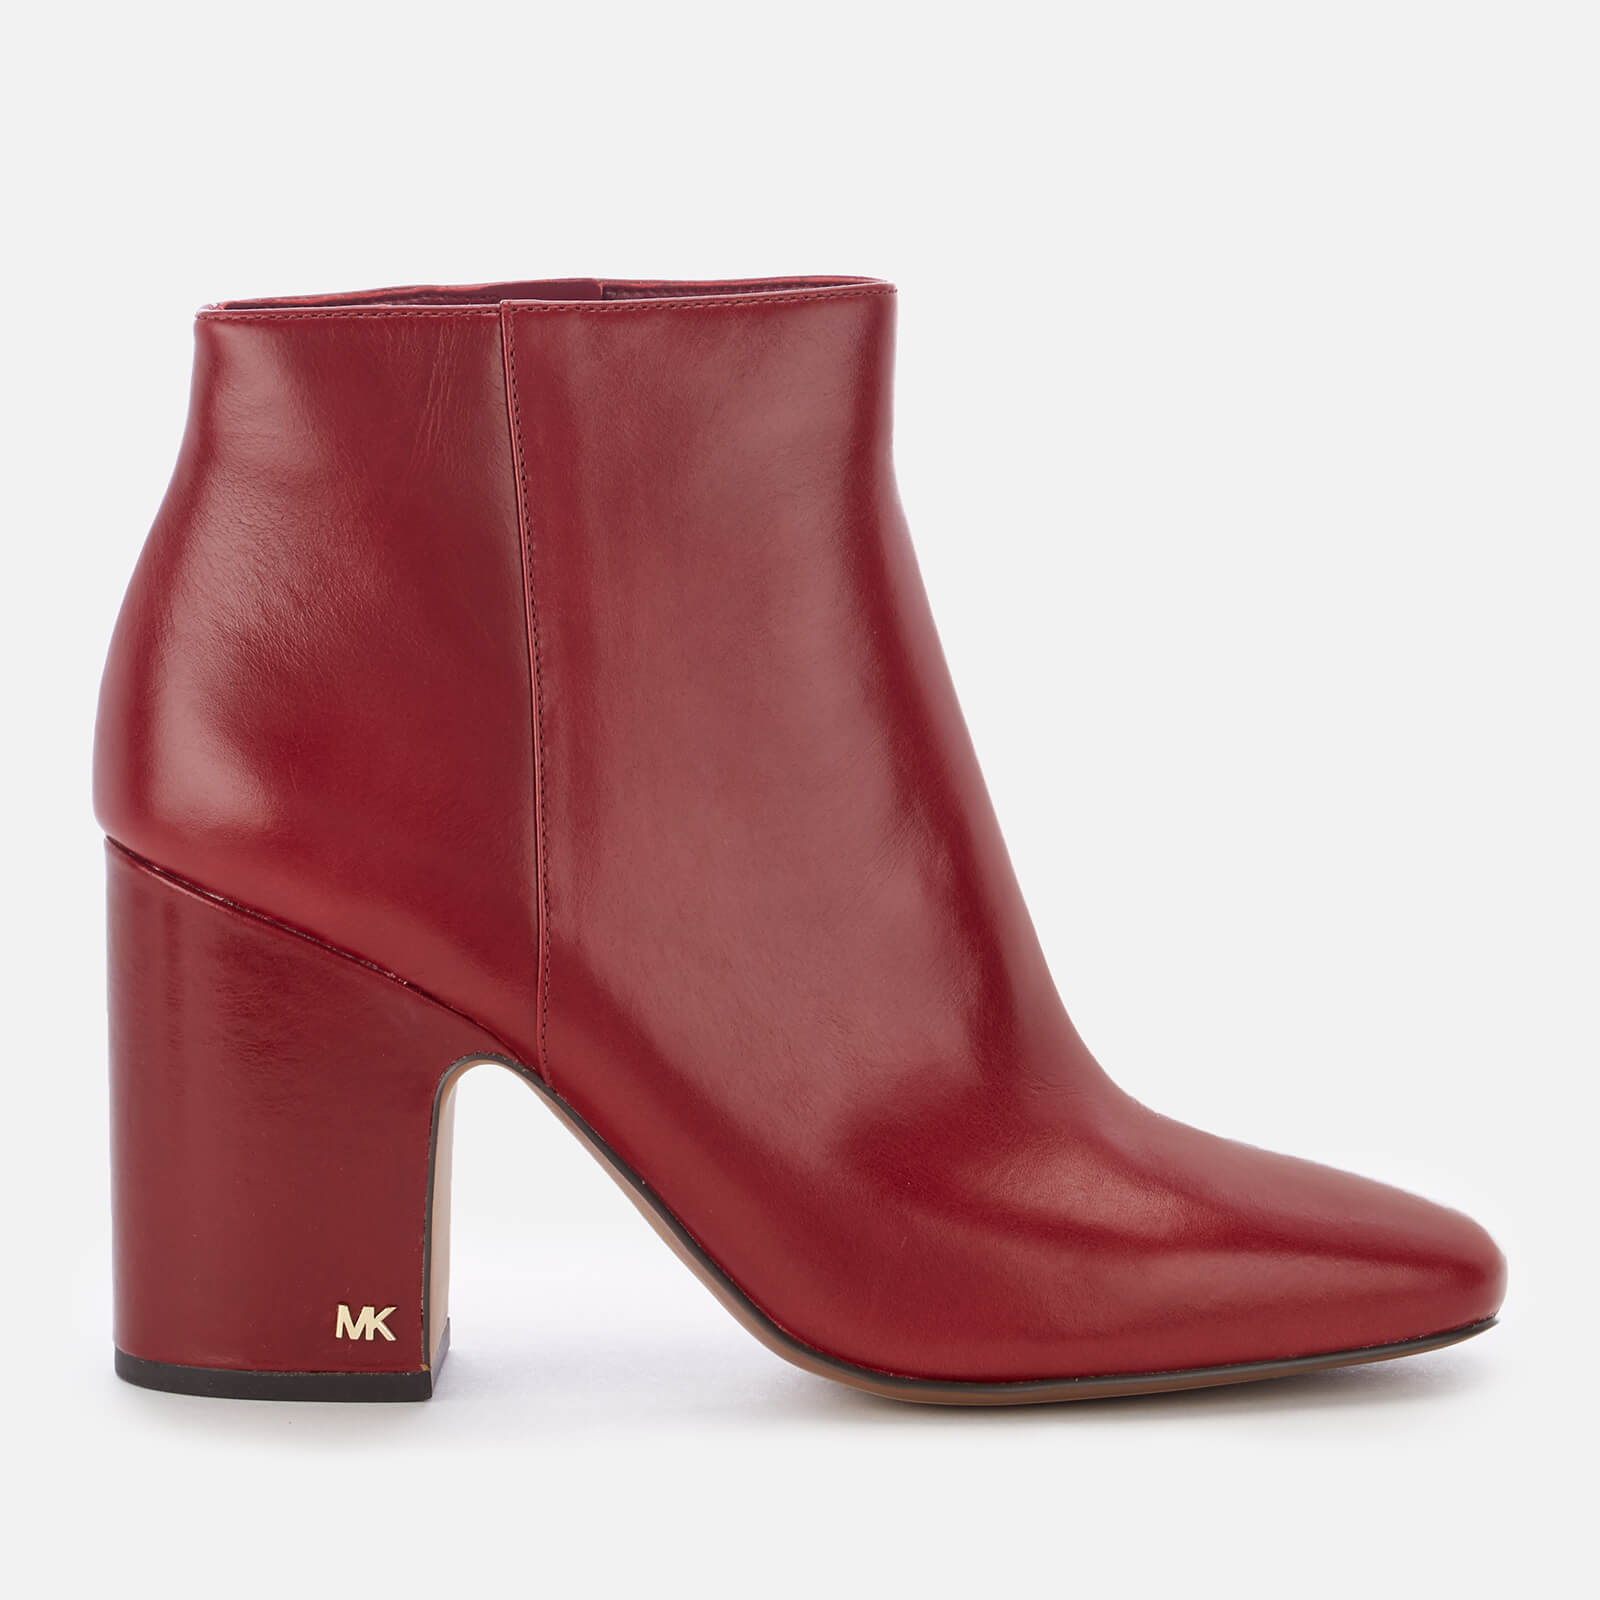 74db2bd301 MICHAEL MICHAEL KORS Women's Elaine Leather Heeled Ankle Boots - Mulberry